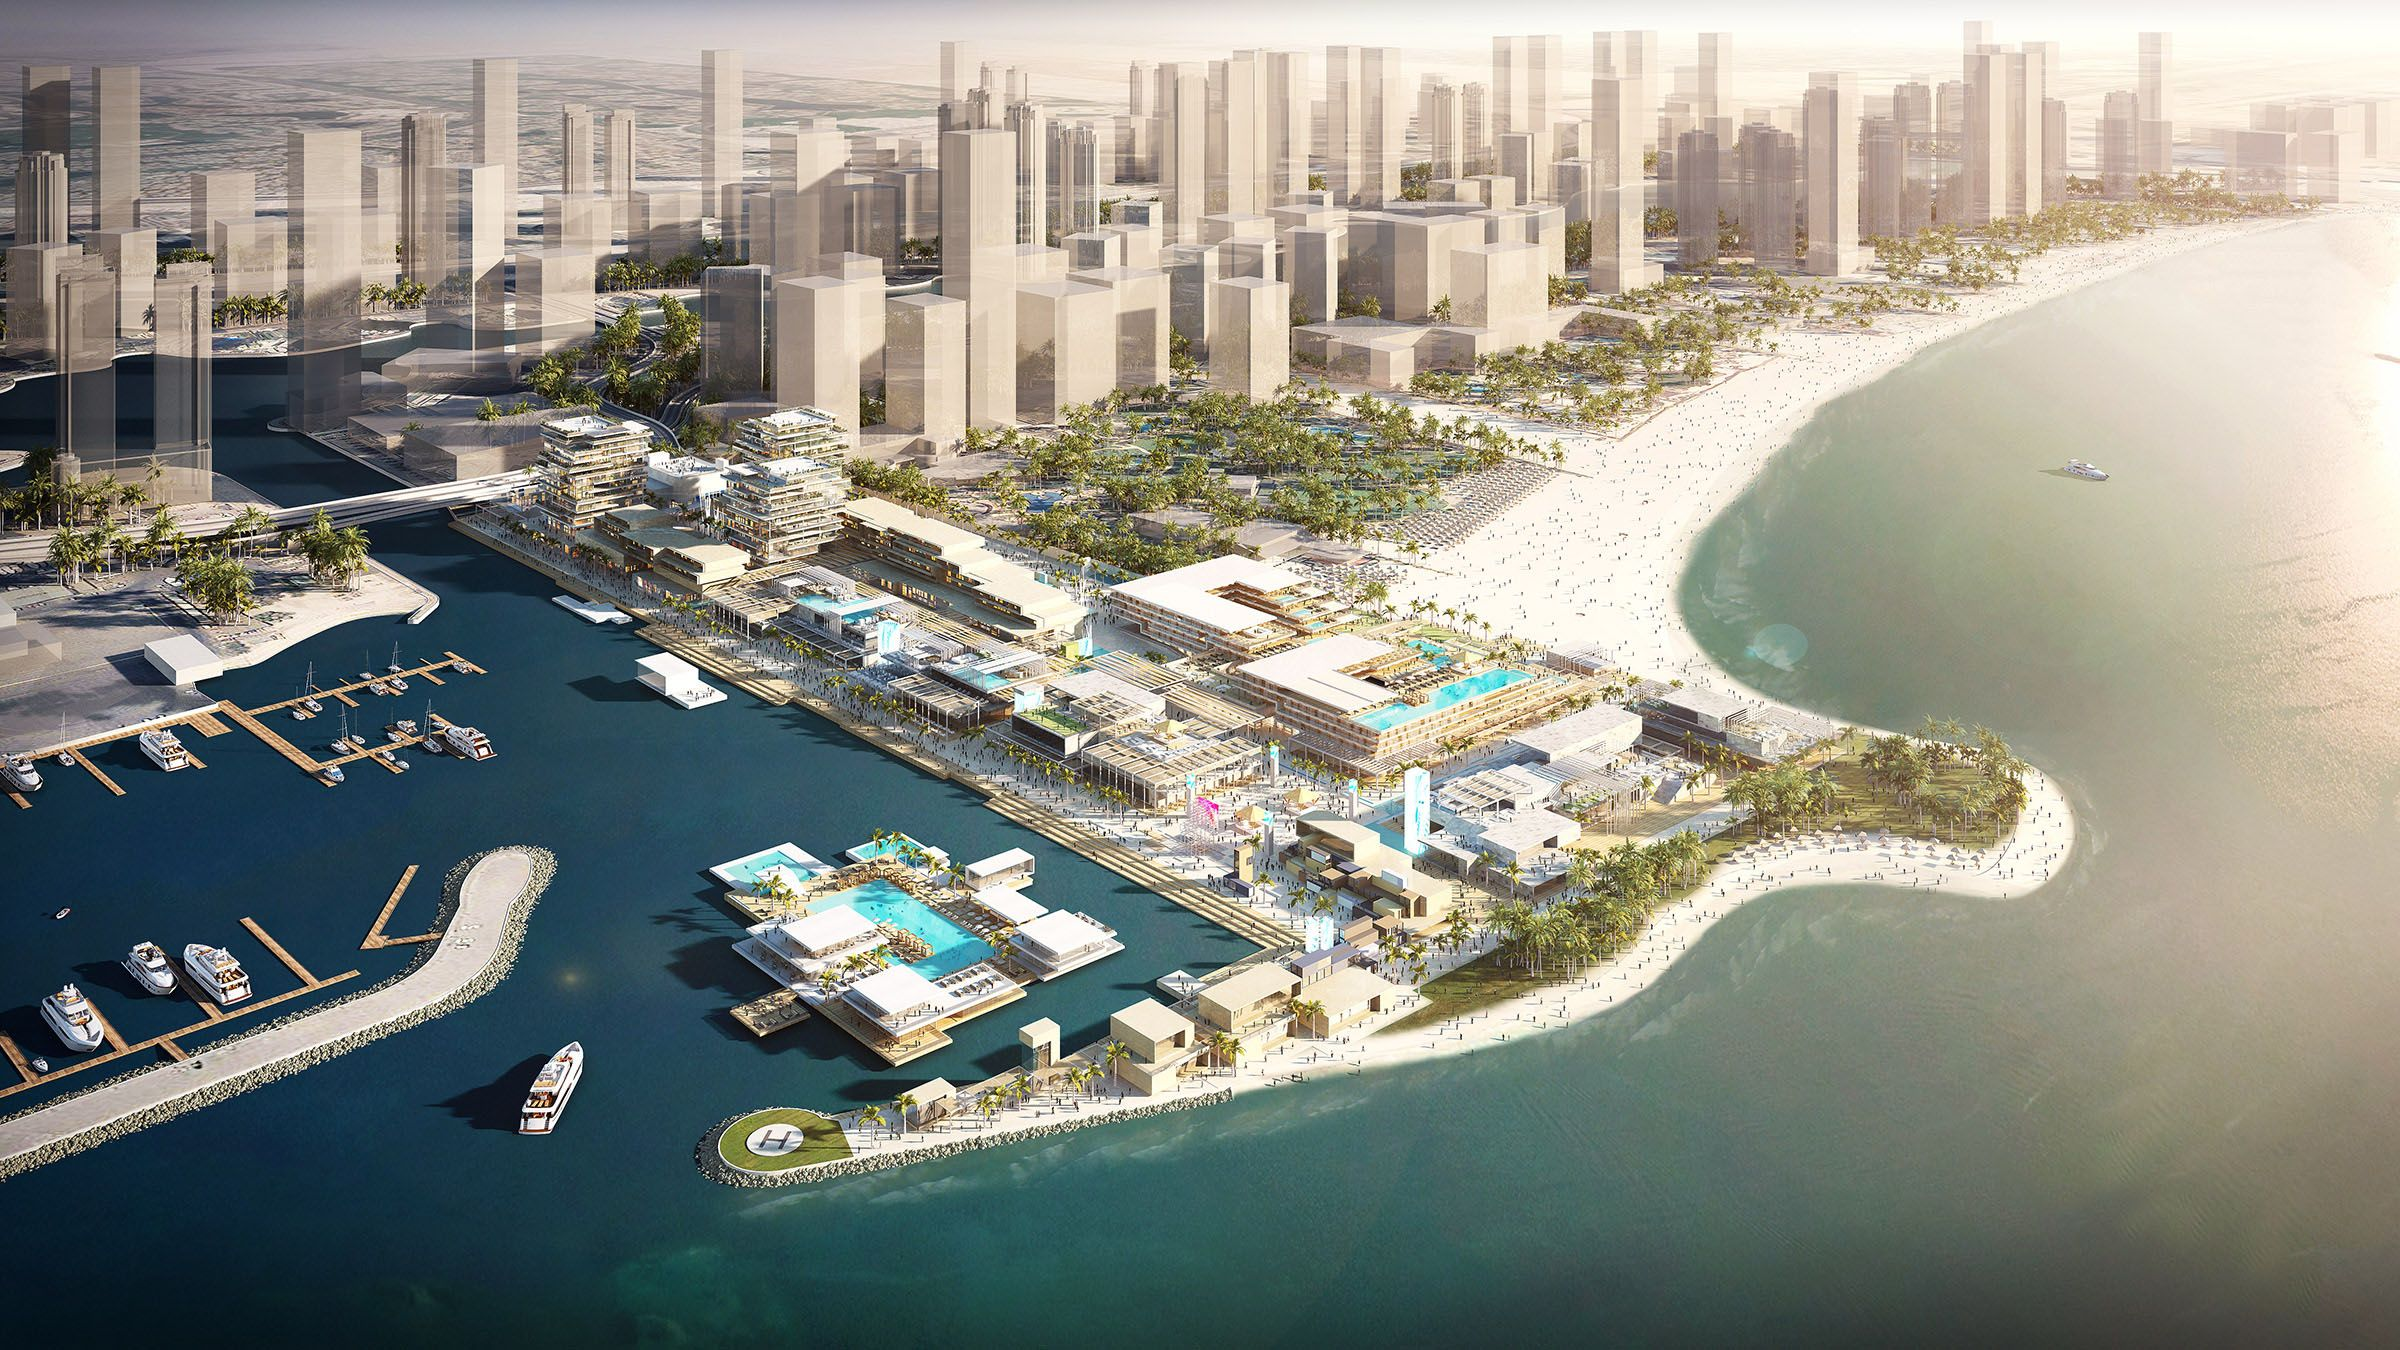 10 Design - Waterfront Mixed Use Development Masterplan